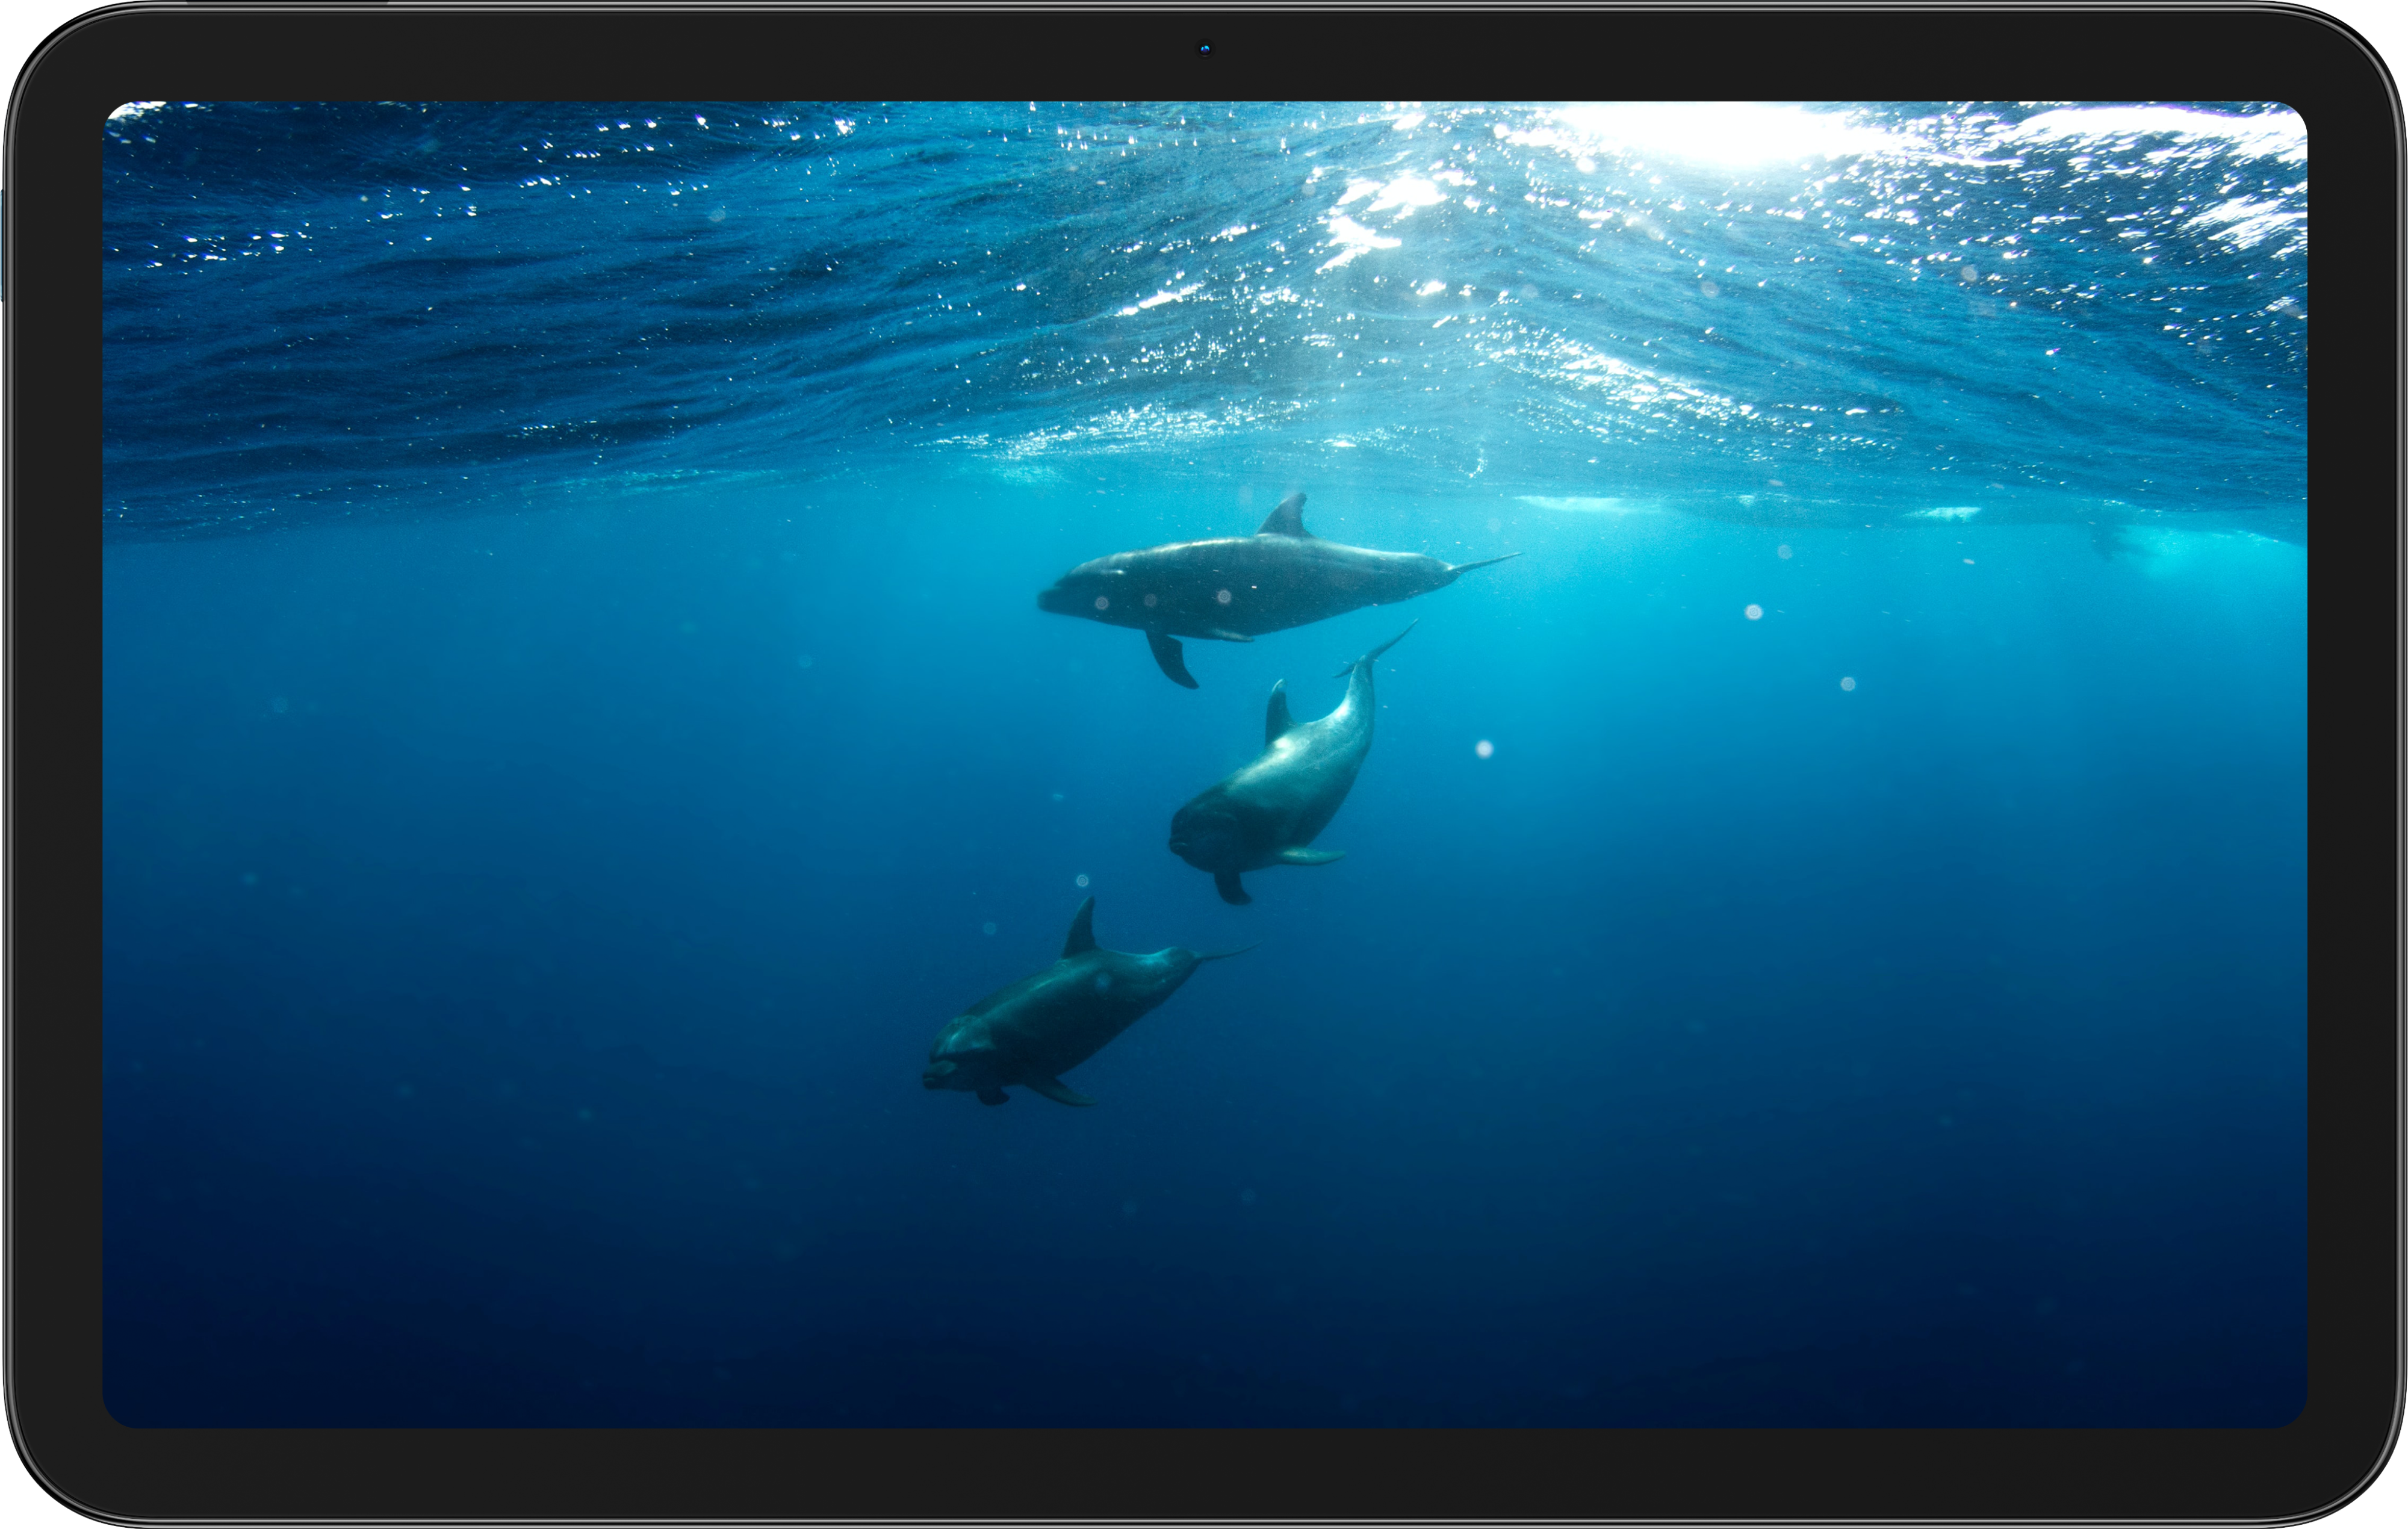 An image of dolphins displayed on the Nokia T20 tablet